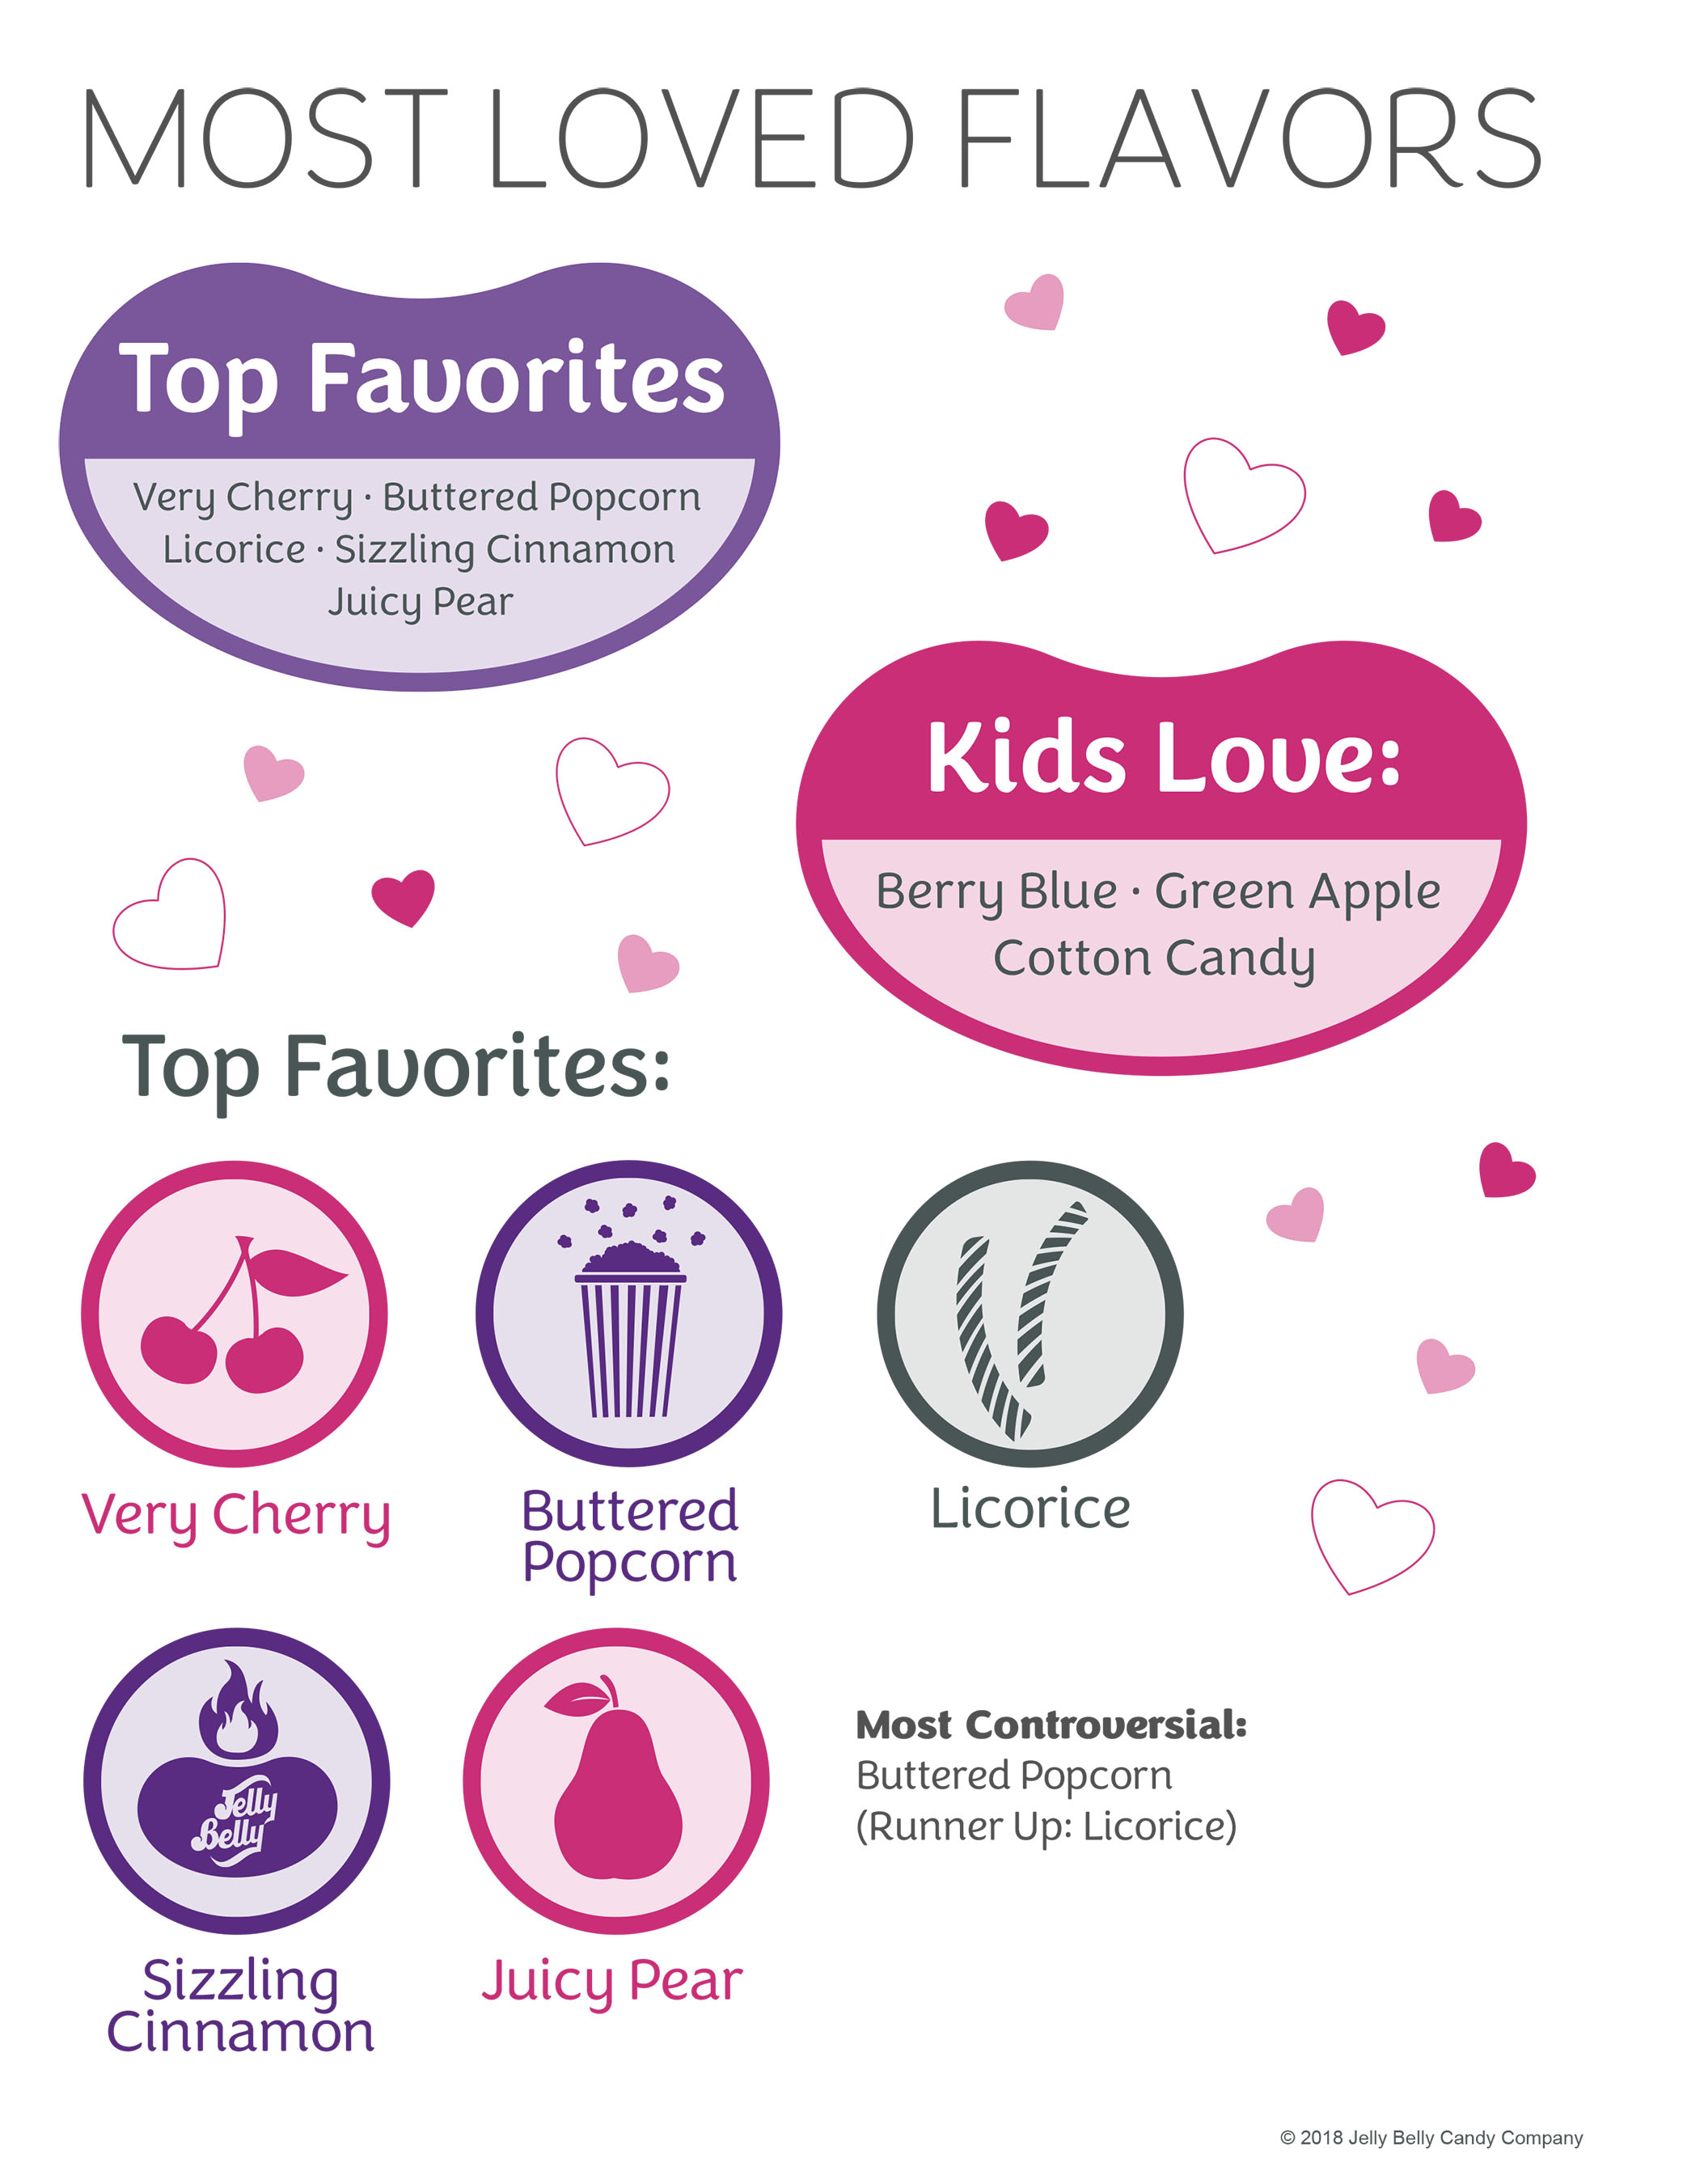 Infographic from Jelly Belly Candy Company explains some of the most popular flavors of jelly beans